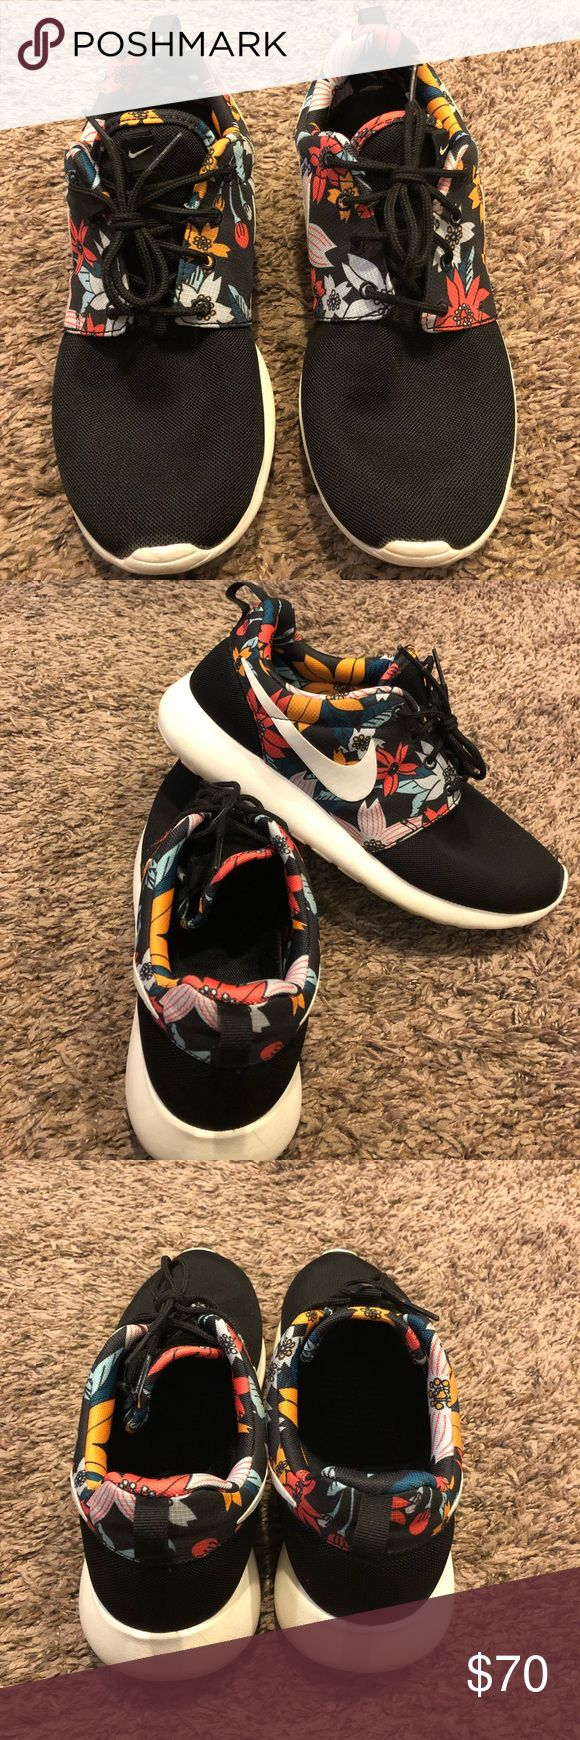 US 9 WOMEN'S NIKE ROSHE FLOWER PRINT RUNNING SHOES Like new. Size Women's US 9. Please note that colors may slightly very due to the settings of your electronic device. Please ask questions before purchasing. Nike Shoes Sneakers